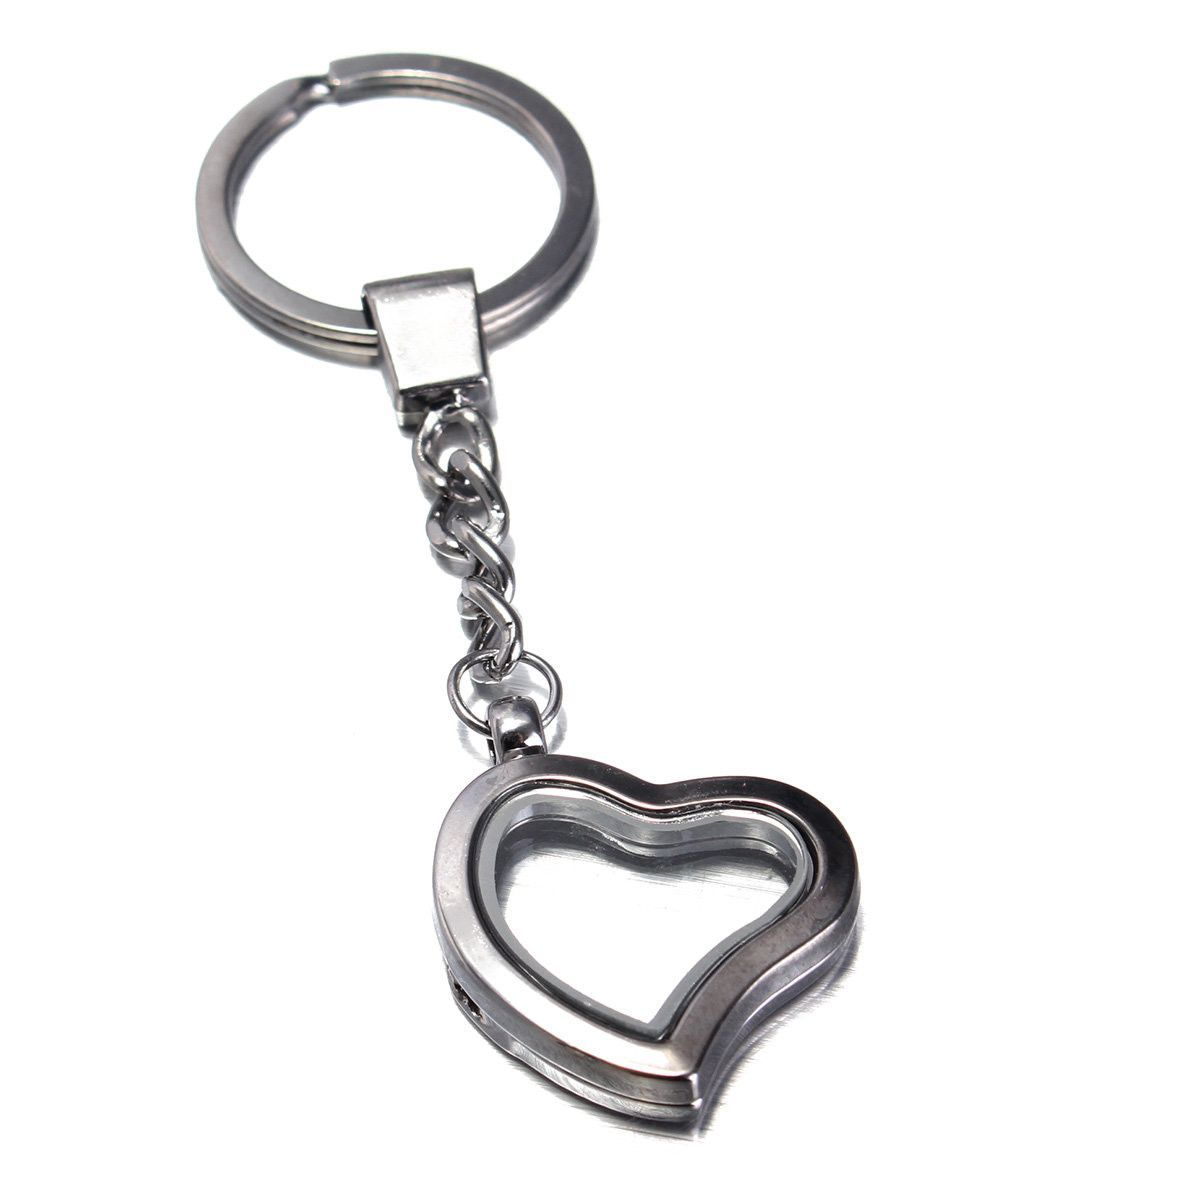 thoughtfuli lockets keepsakes messages your customized engraved best pinterest images turn unique on ideas engraving keychain meaningful handwriting into